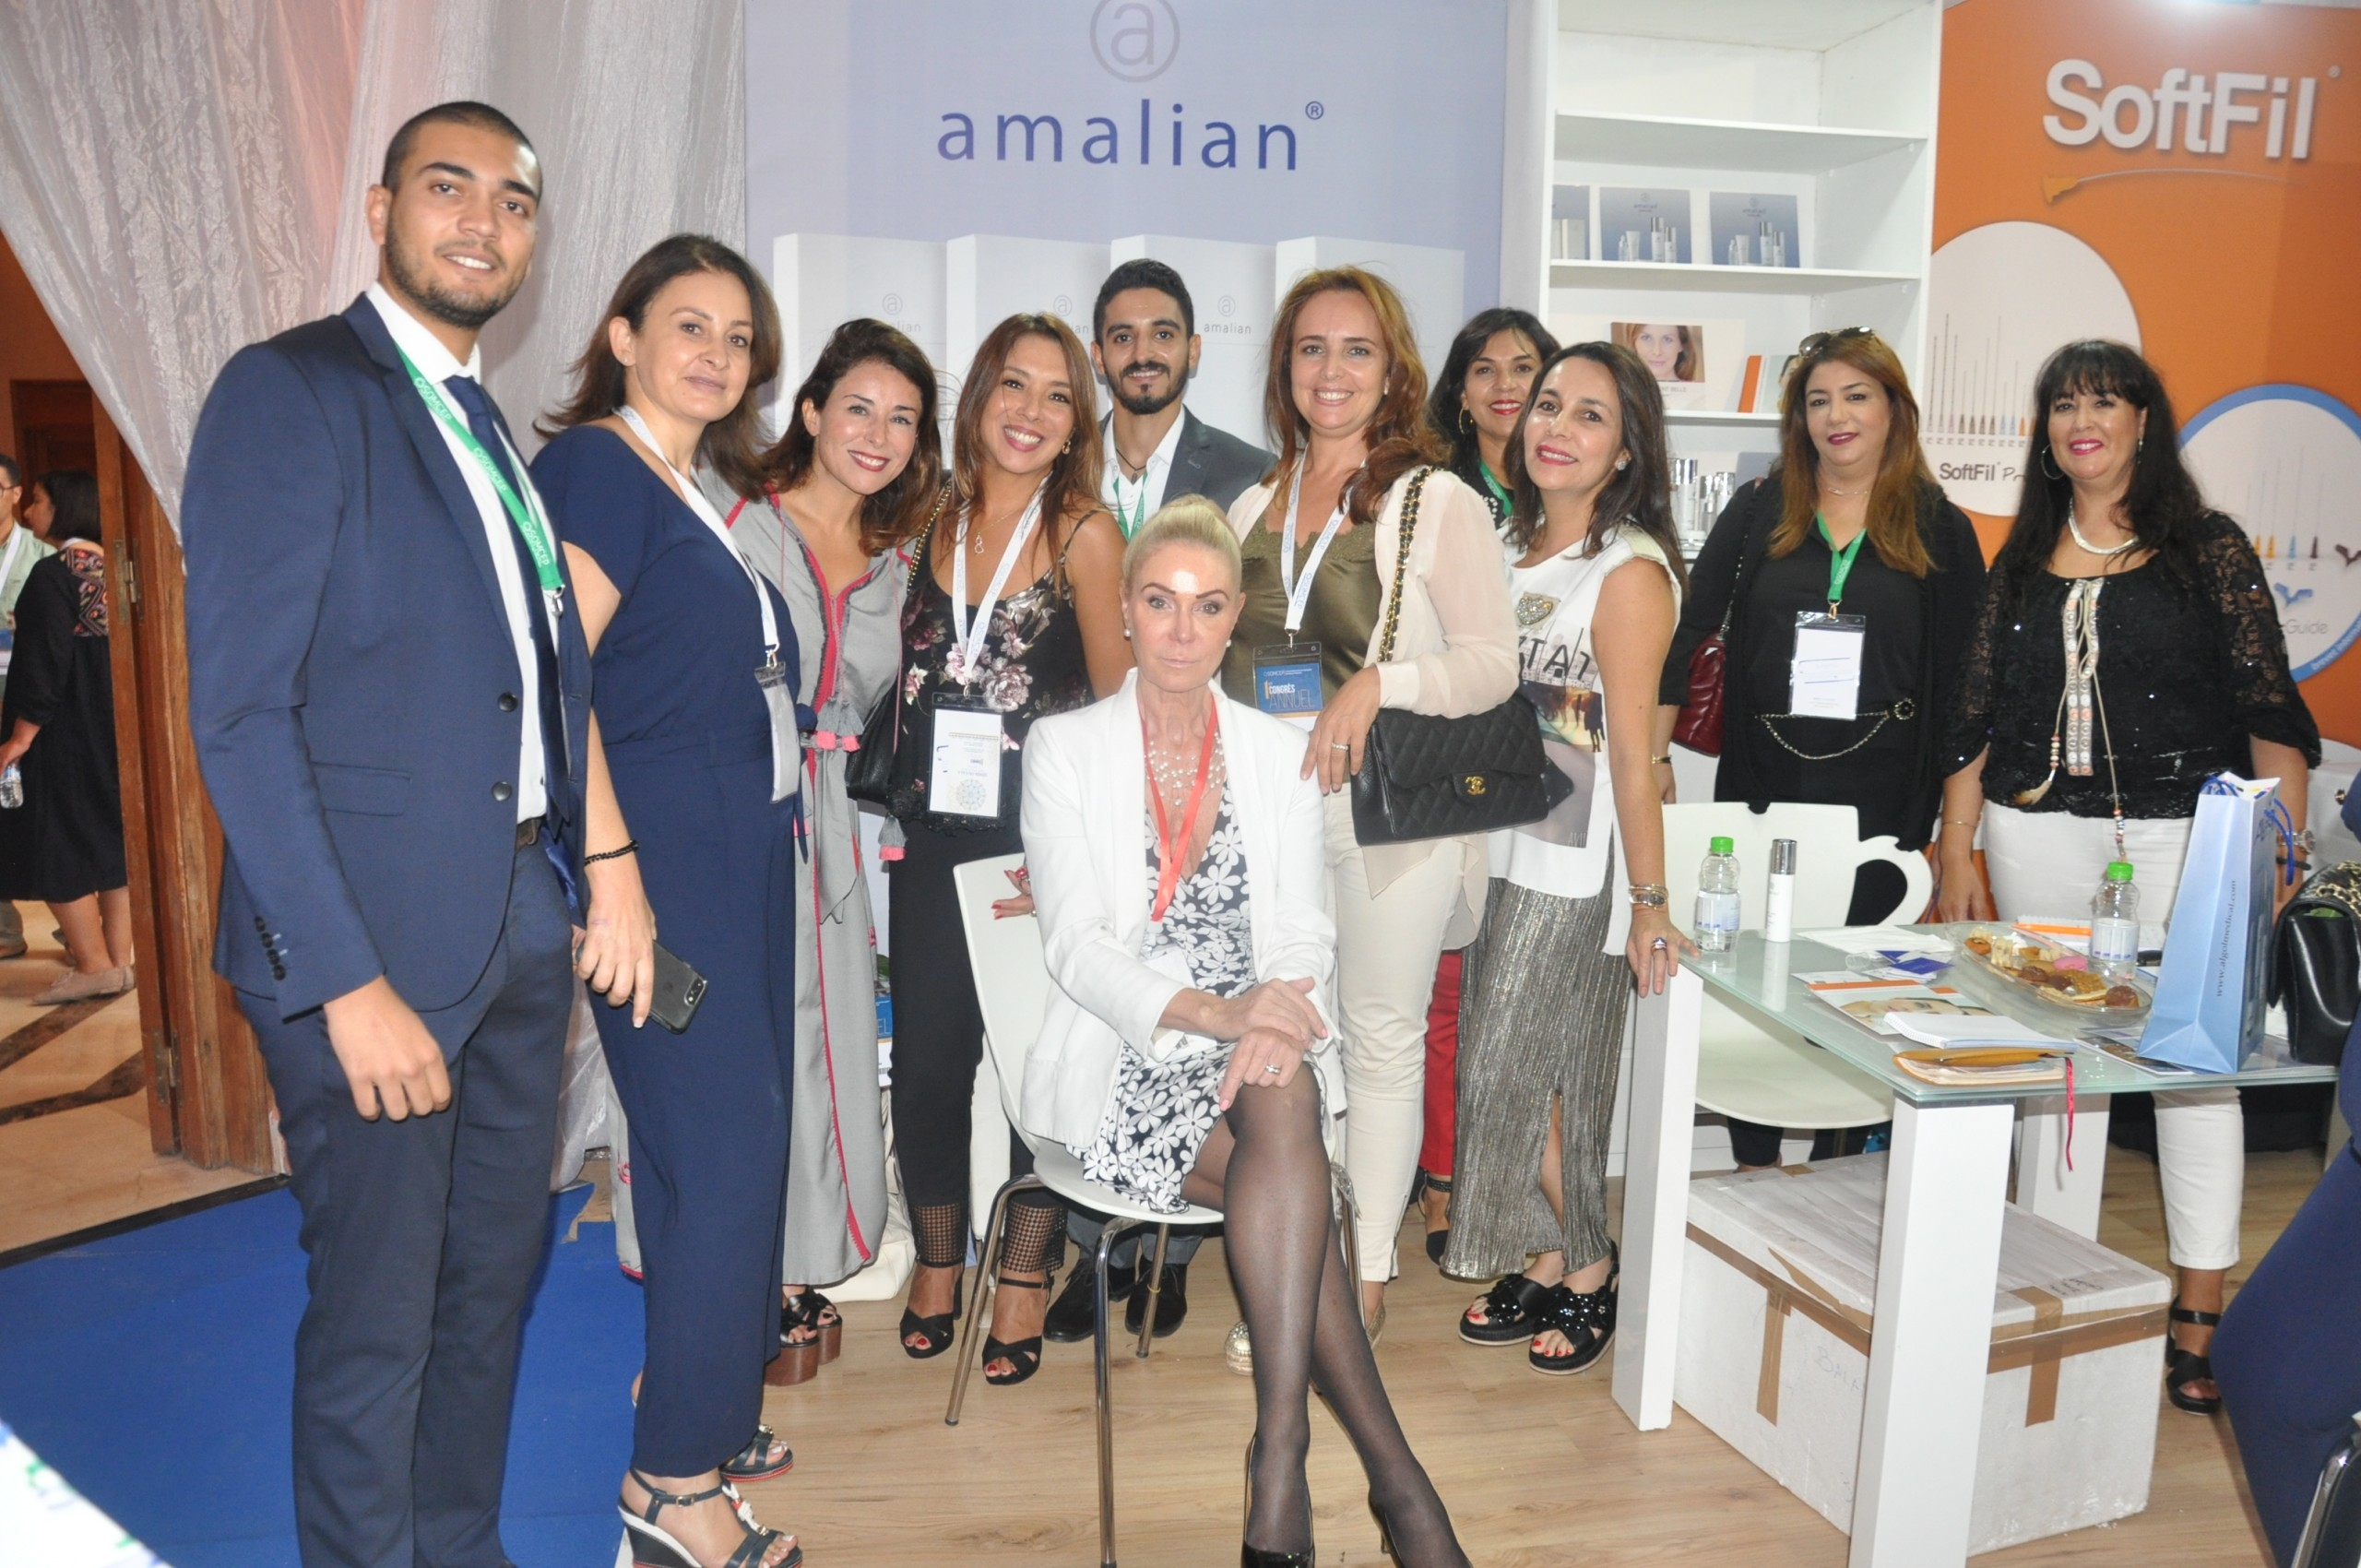 SOMCEP 2018 – MARRAKECH – September 28-29, 2018